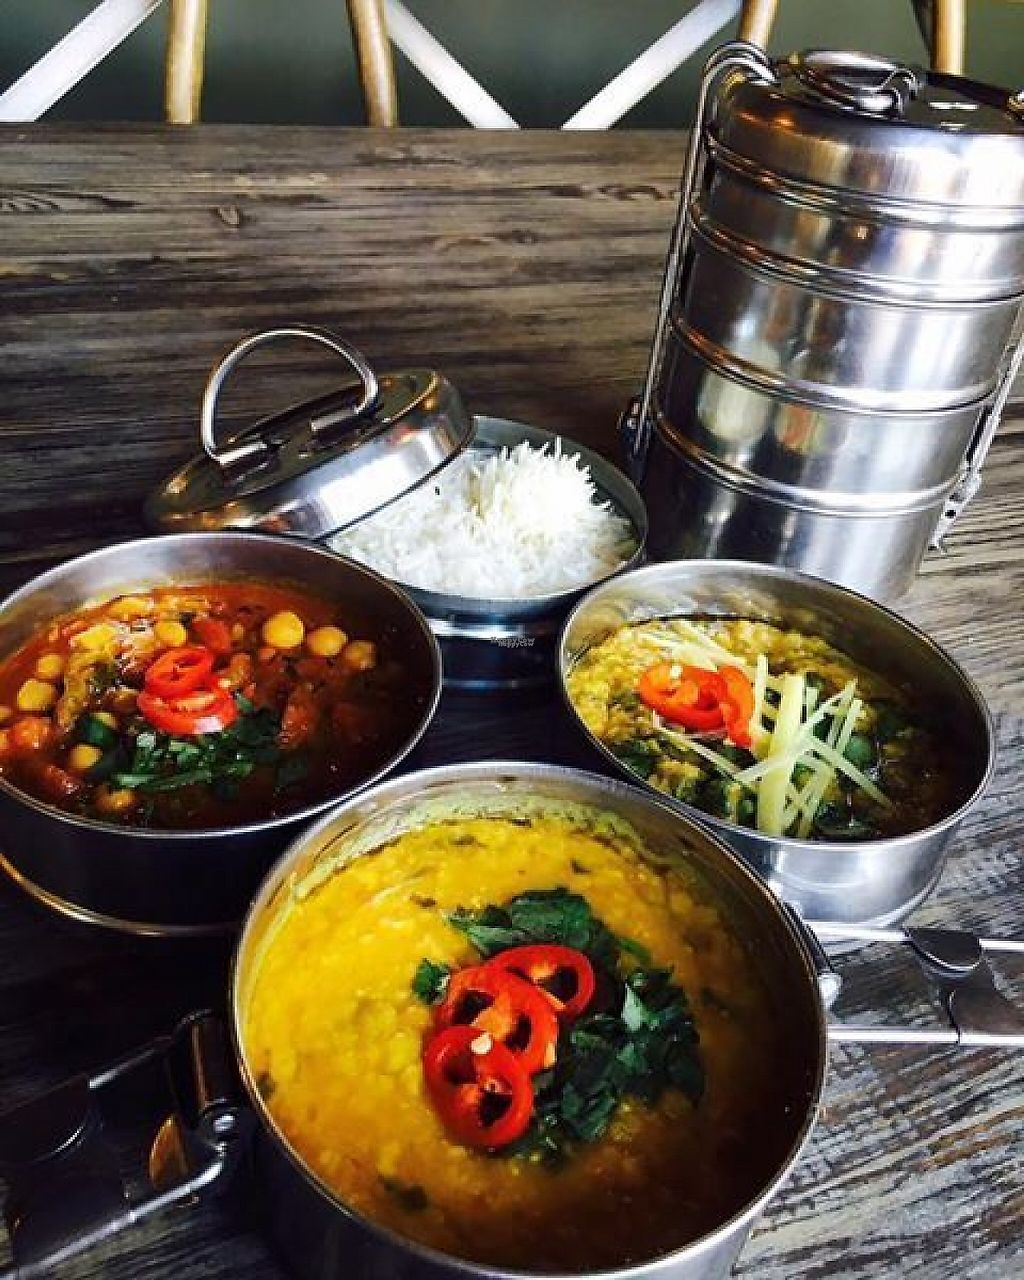 """Photo of Mowgli - Water St  by <a href=""""/members/profile/community"""">community</a> <br/>Vegan Tiffin Roulette <br/> January 3, 2017  - <a href='/contact/abuse/image/84954/207791'>Report</a>"""